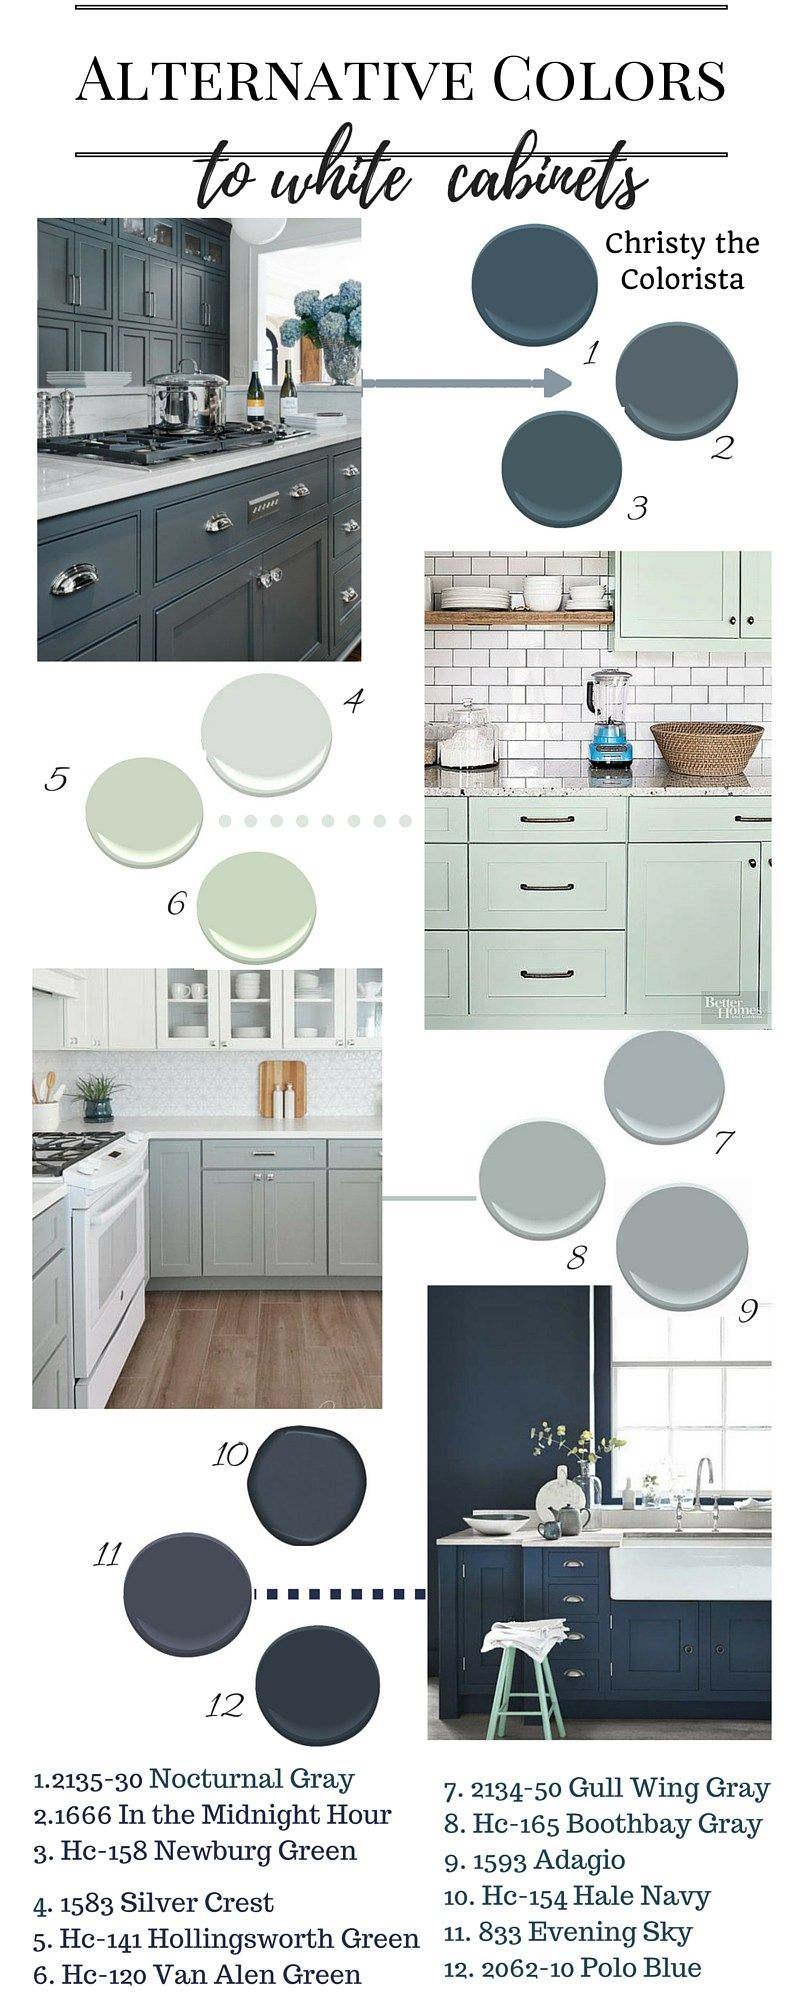 Great Benjamin Moore Paint Colors For Cabinets Polo Blue Newberg Green Silver Crest Hollingsworth Green Boothbay Gray Hal Home Home Decor Kitchen Colors